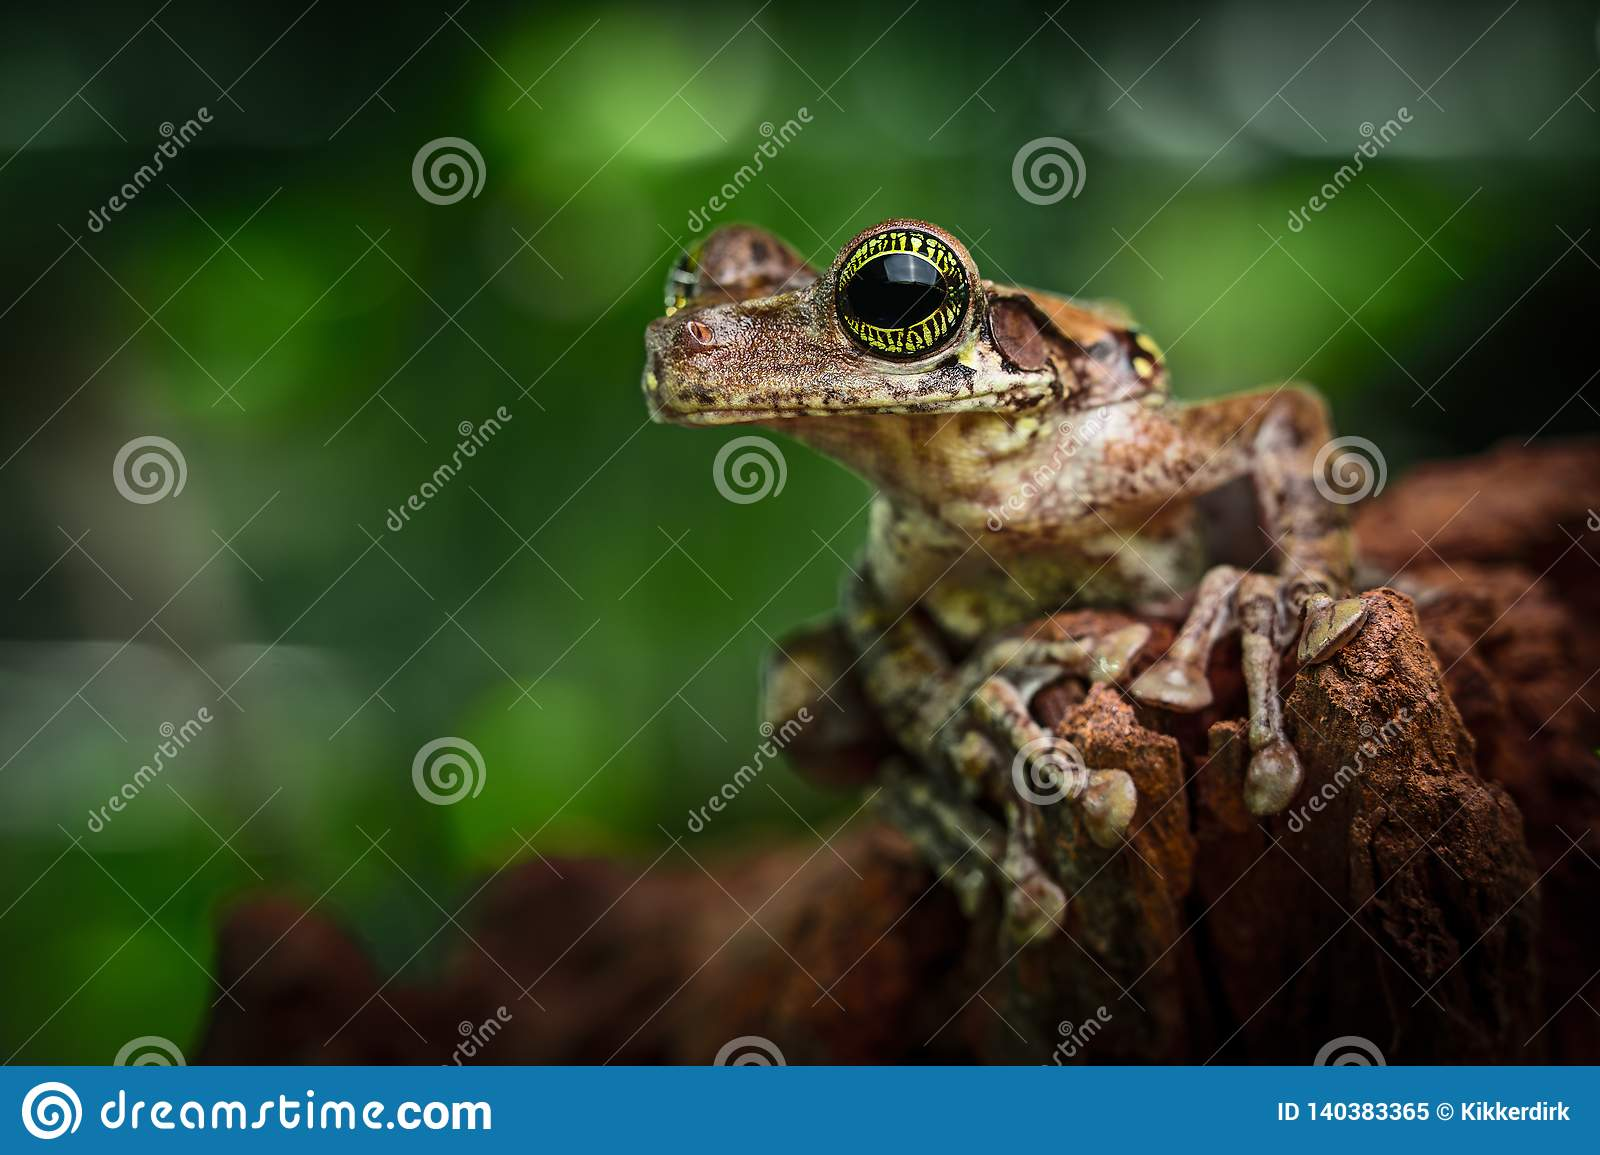 Tree frog Amazon rain forest, tropical exotic treefrog Osteocephalus taurinus